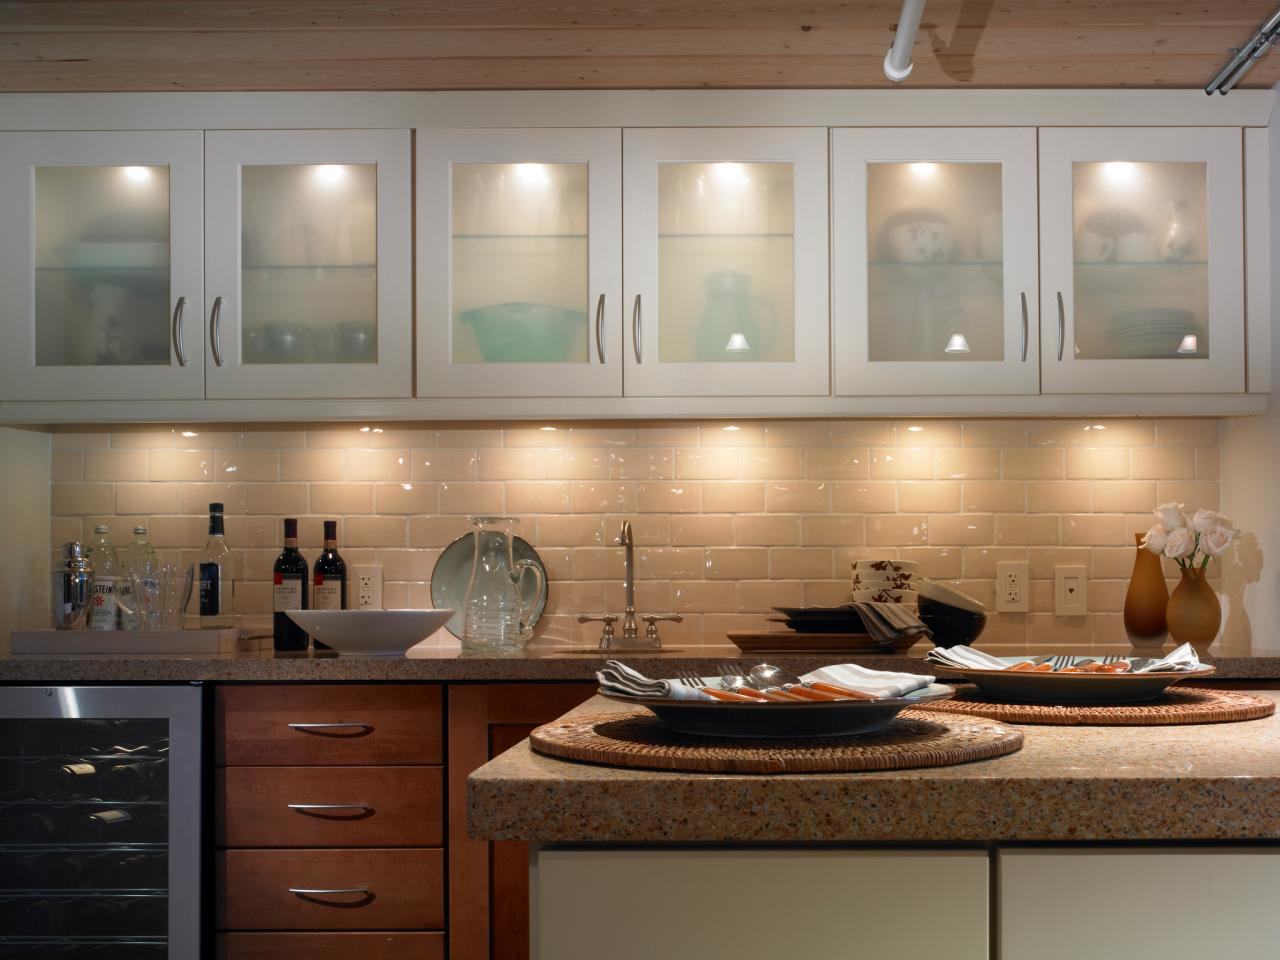 Kitchen Lighting Design Tips DIY - Kitchen loghts